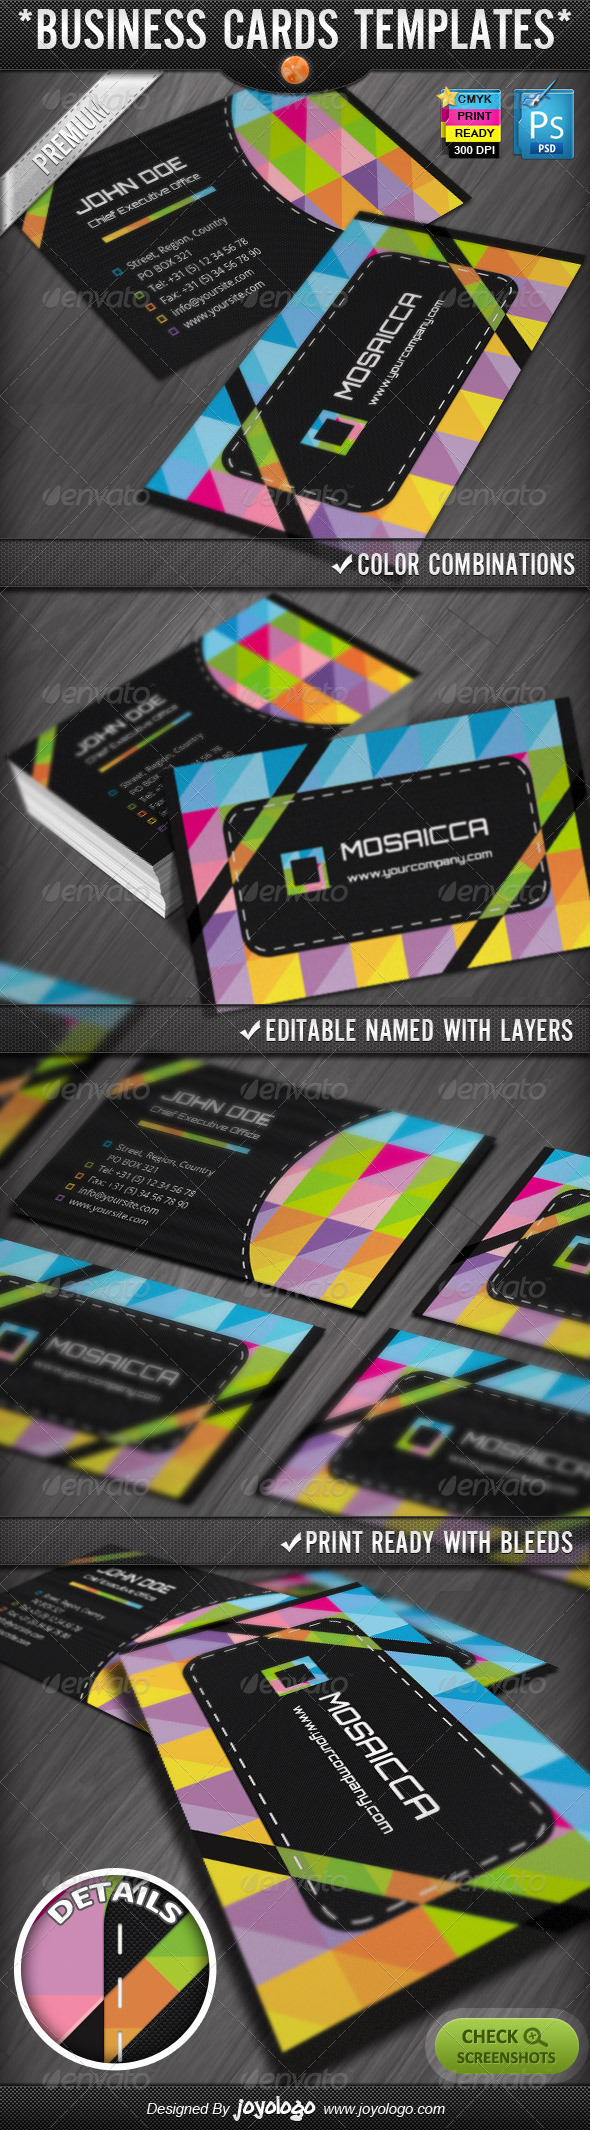 Colorful Mosaics Abstract Business Cards Designs - Creative Business Cards